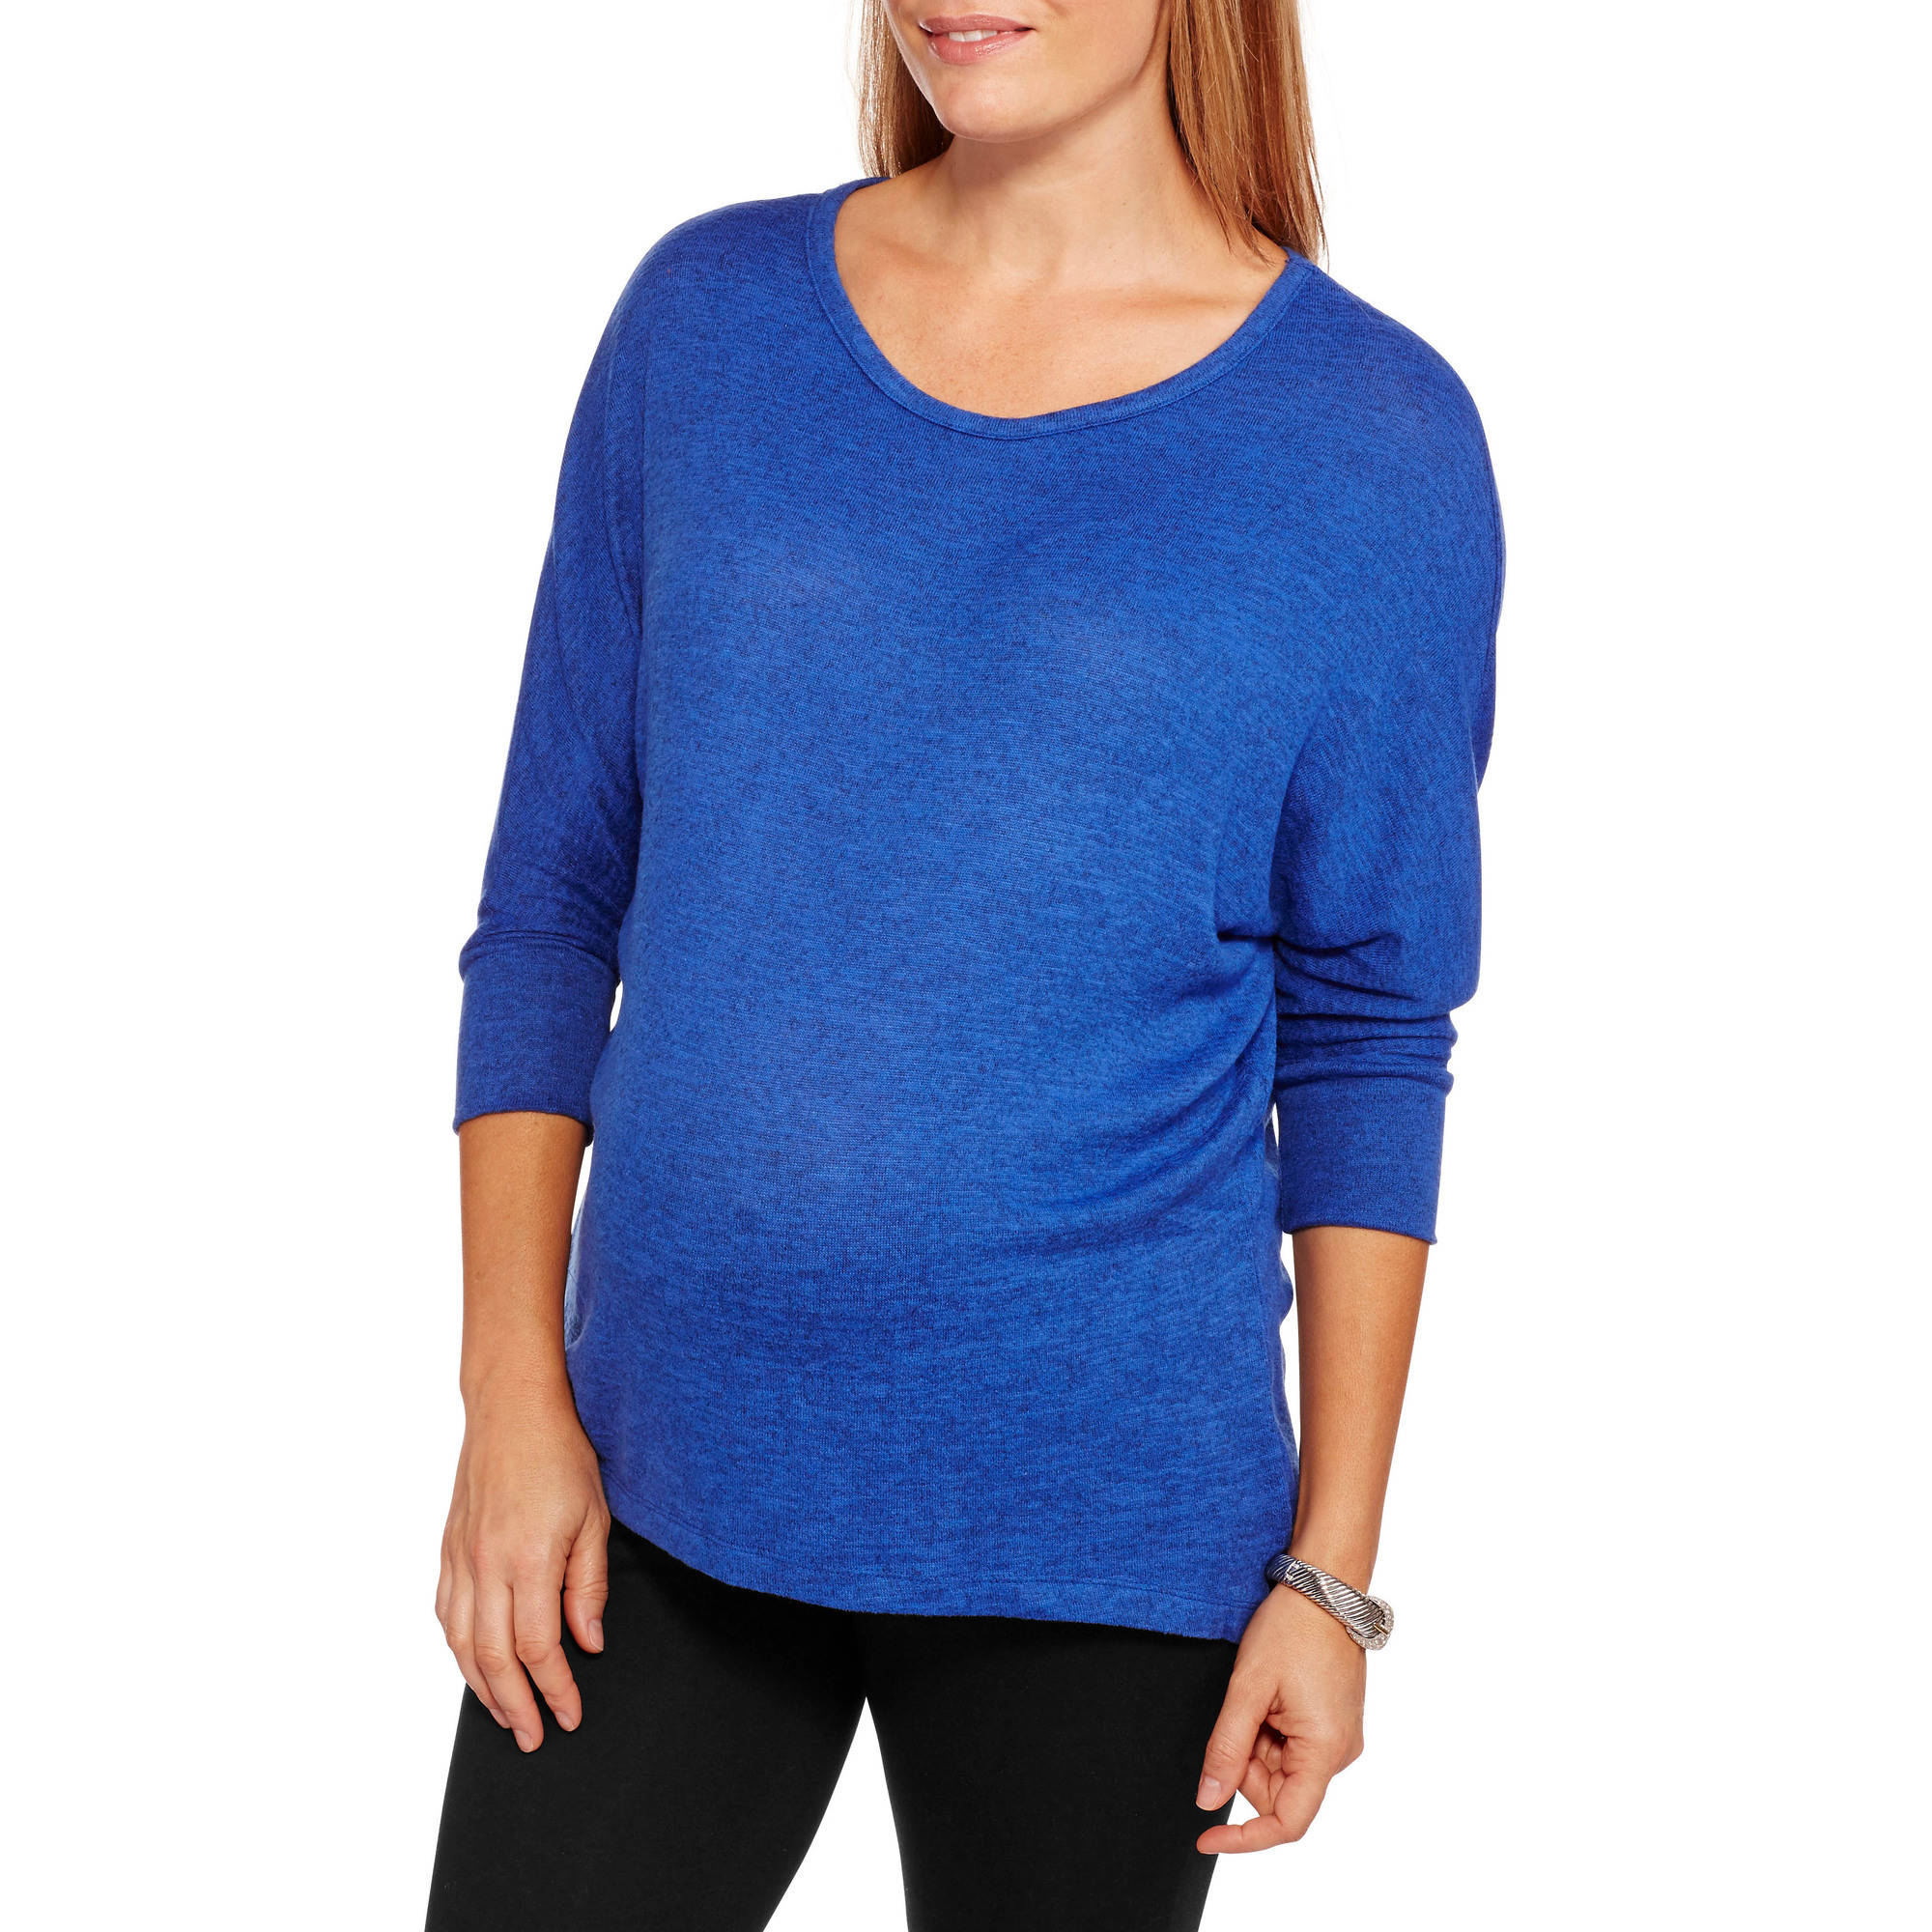 Inspire Maternity Brushed Hacci Dolman Top